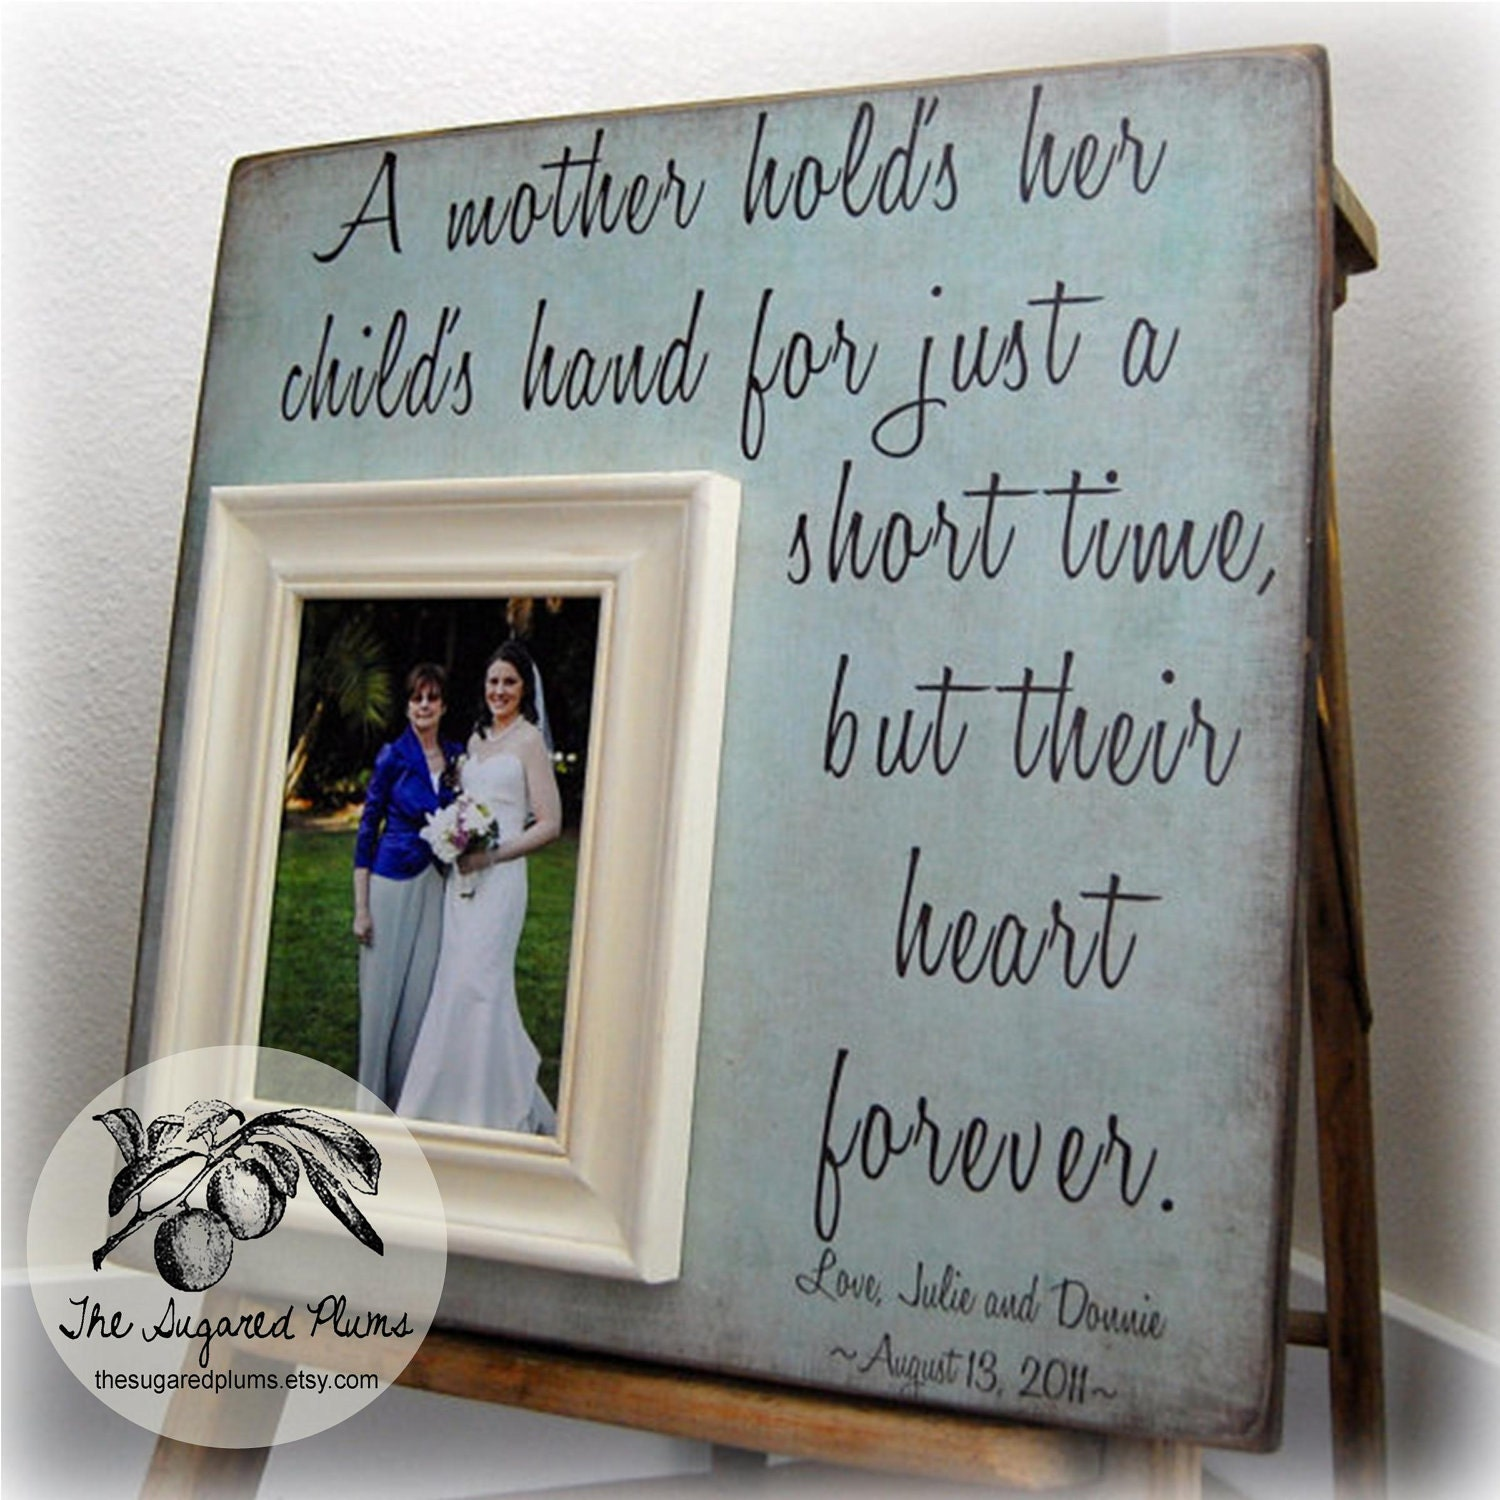 Wedding Present For My Mom : Mother of the Bride Gift Personalized Picture Frame A Mother